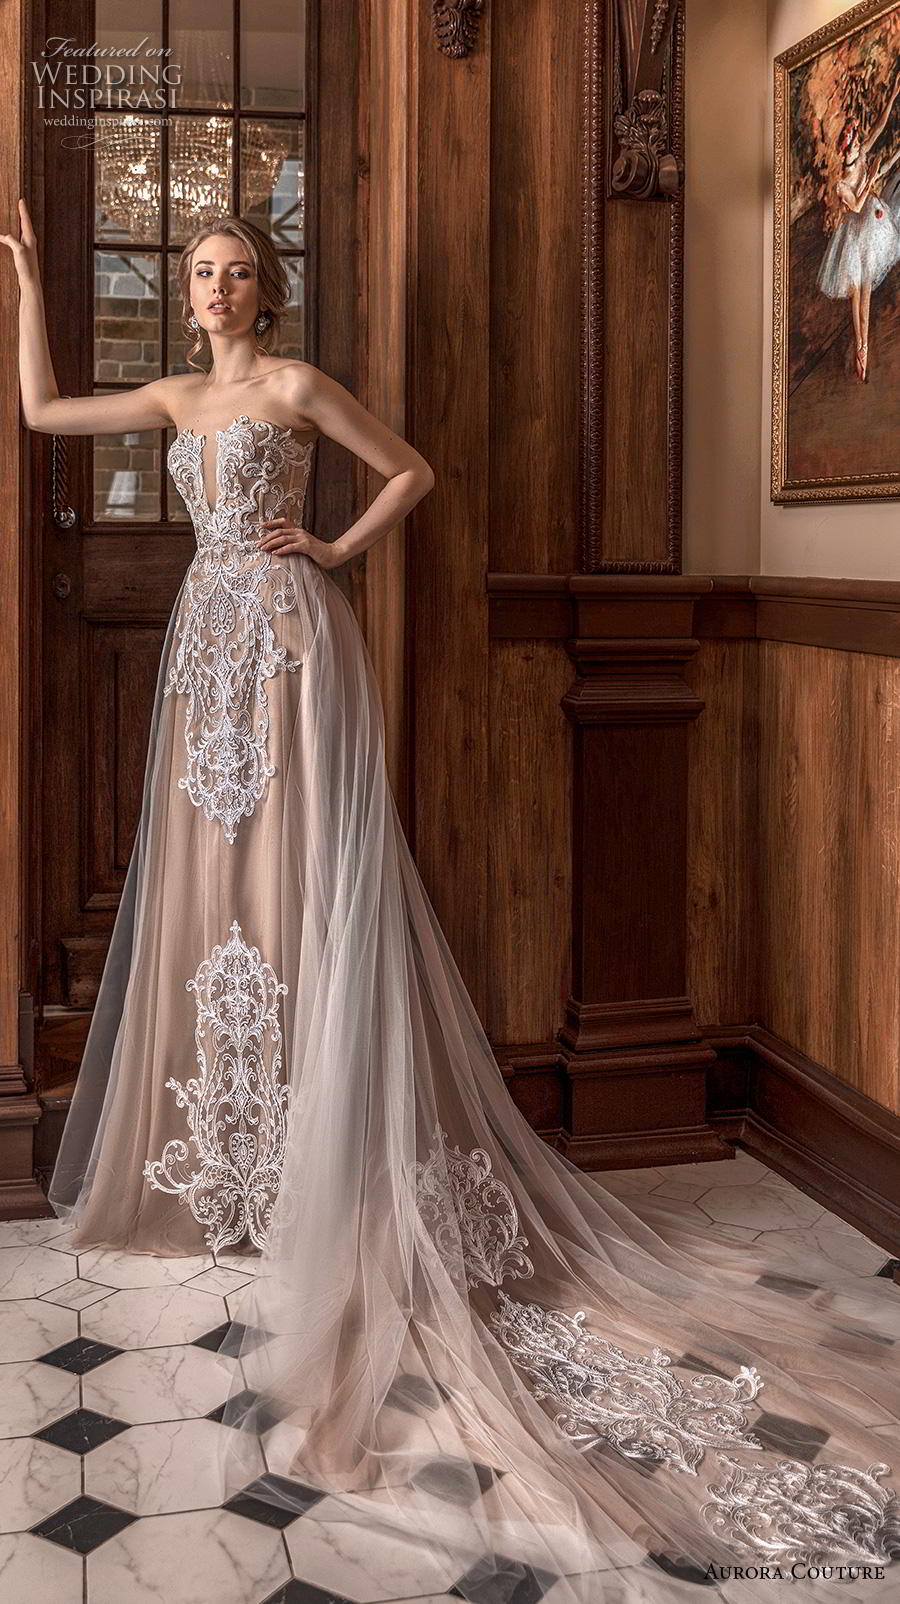 aurora couture 2019 bridal strapless deep plunging sweetheart neckline heavily embellished bodice romantic a  line wedding dress mid back chapel train (7) mv